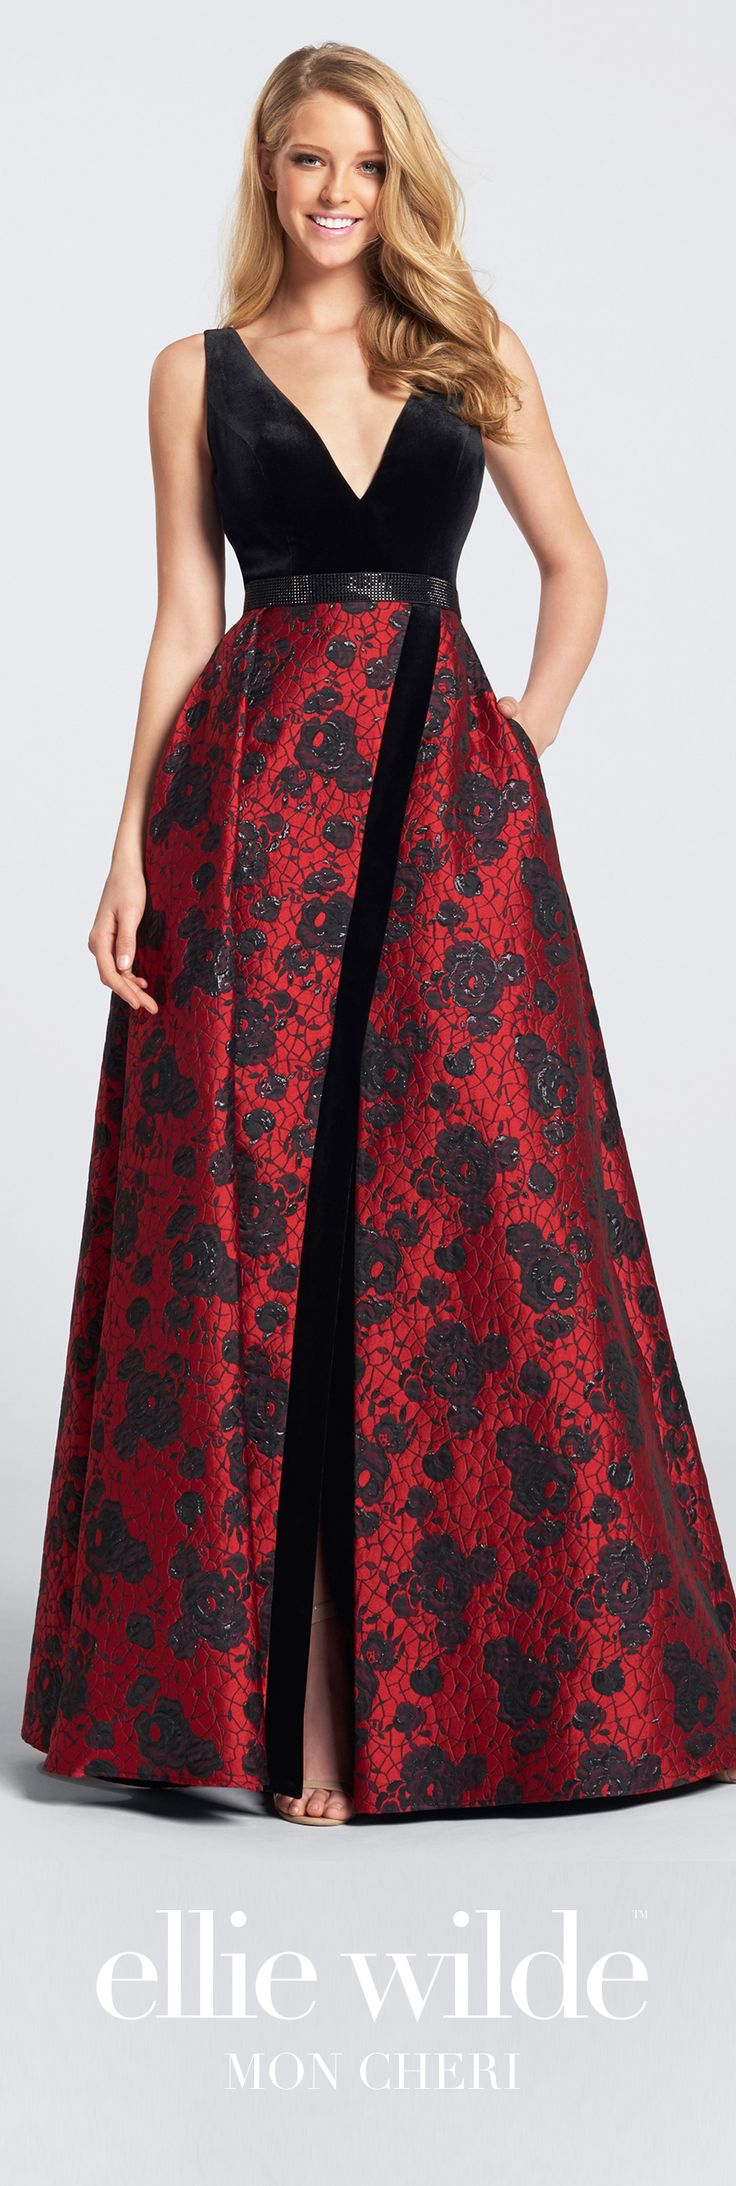 Ellie Wilde - Fall 2017 - Style No. EW21721 - black and red sleeveless velvet and jacquard full A-line evening gown